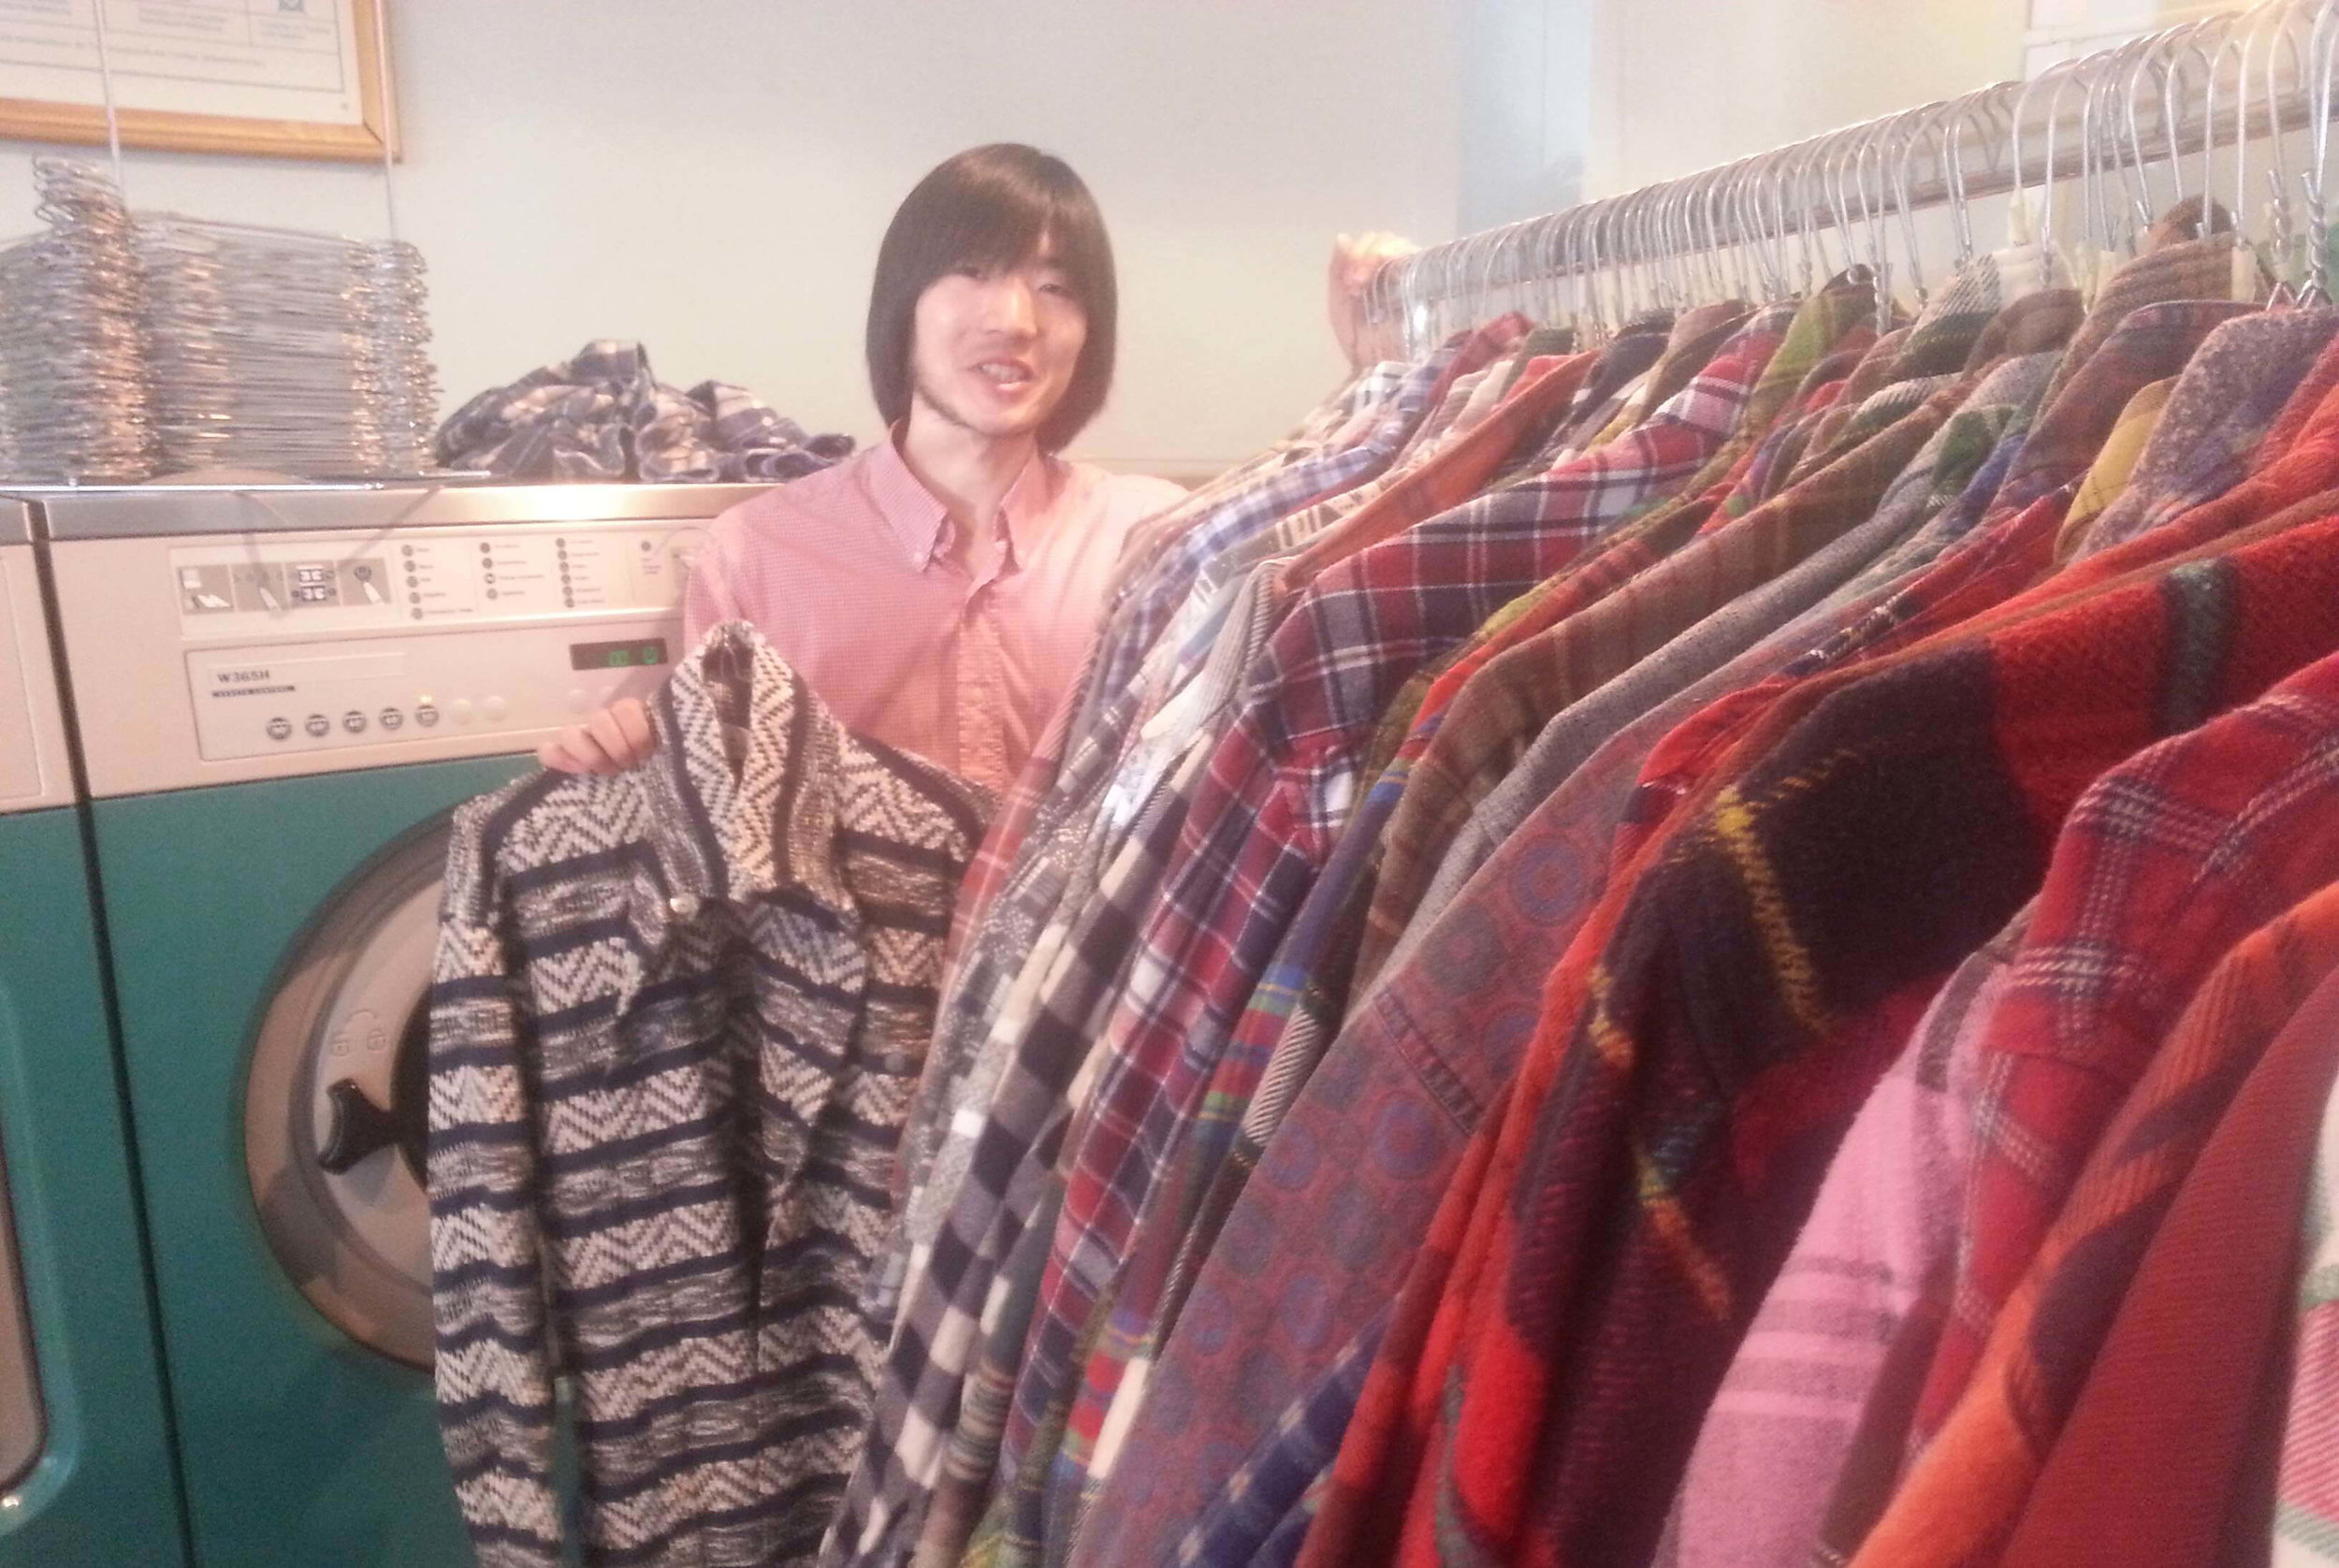 We offer a wide variety of vintage styles